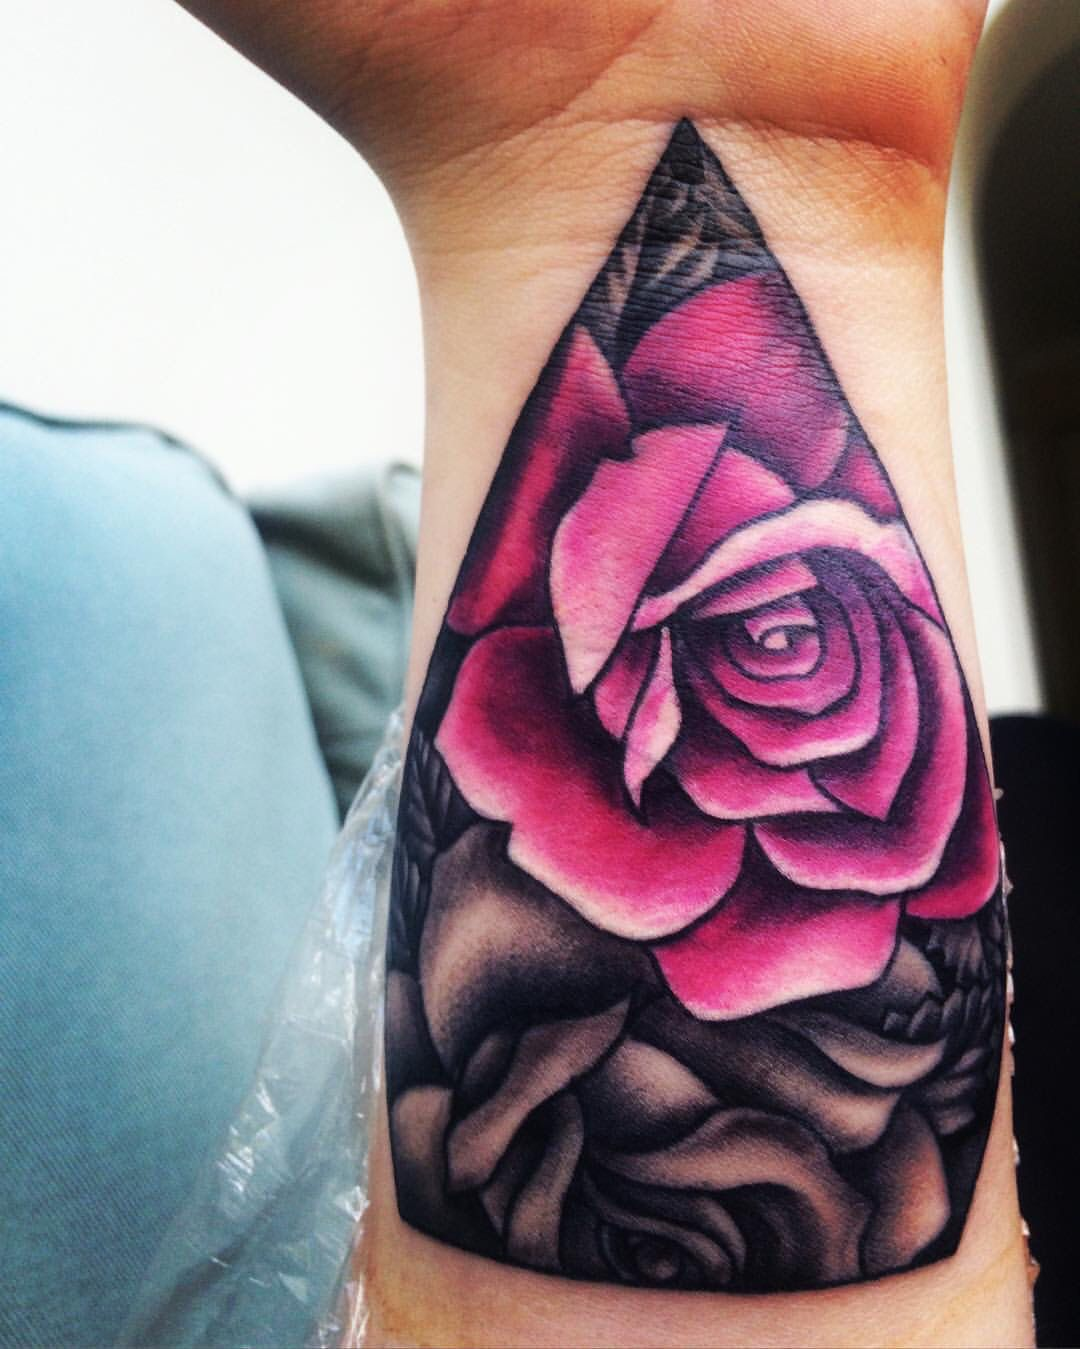 Rose Tattoo Cover Up: Rose Tattoo Wrist Cover Up Pink